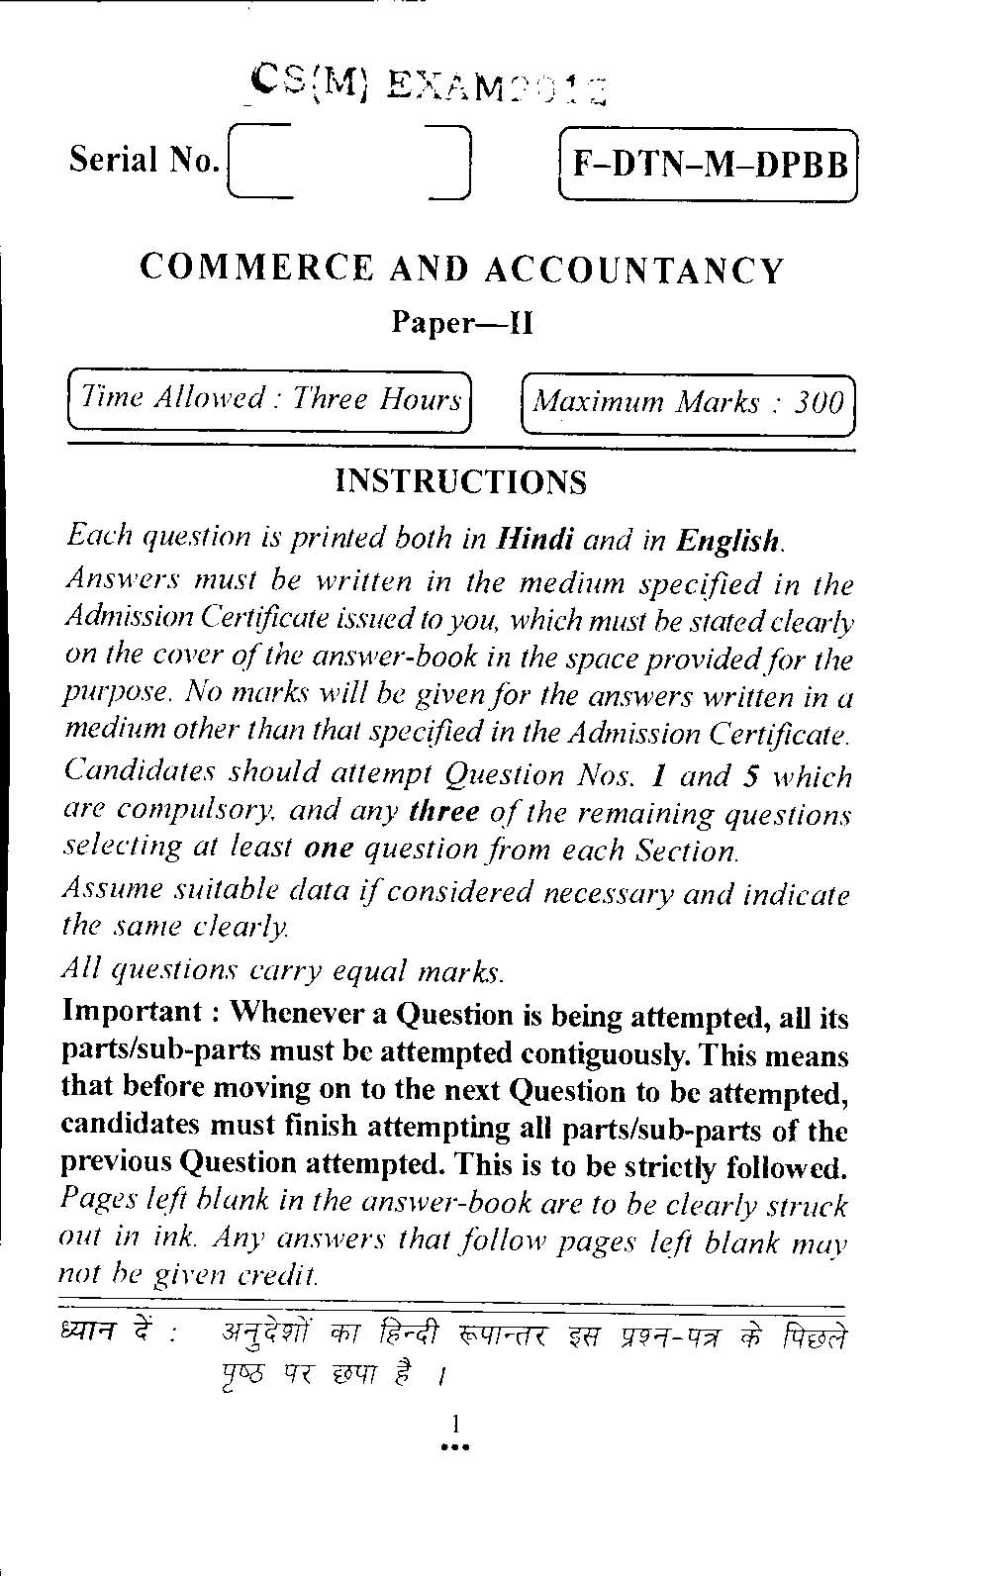 009 Essays On Racism Essay Example Civil Services Examination Commerce And Accountancy Paper Ii Previous Years Que Unbelievable In Schools Best Argumentative Full